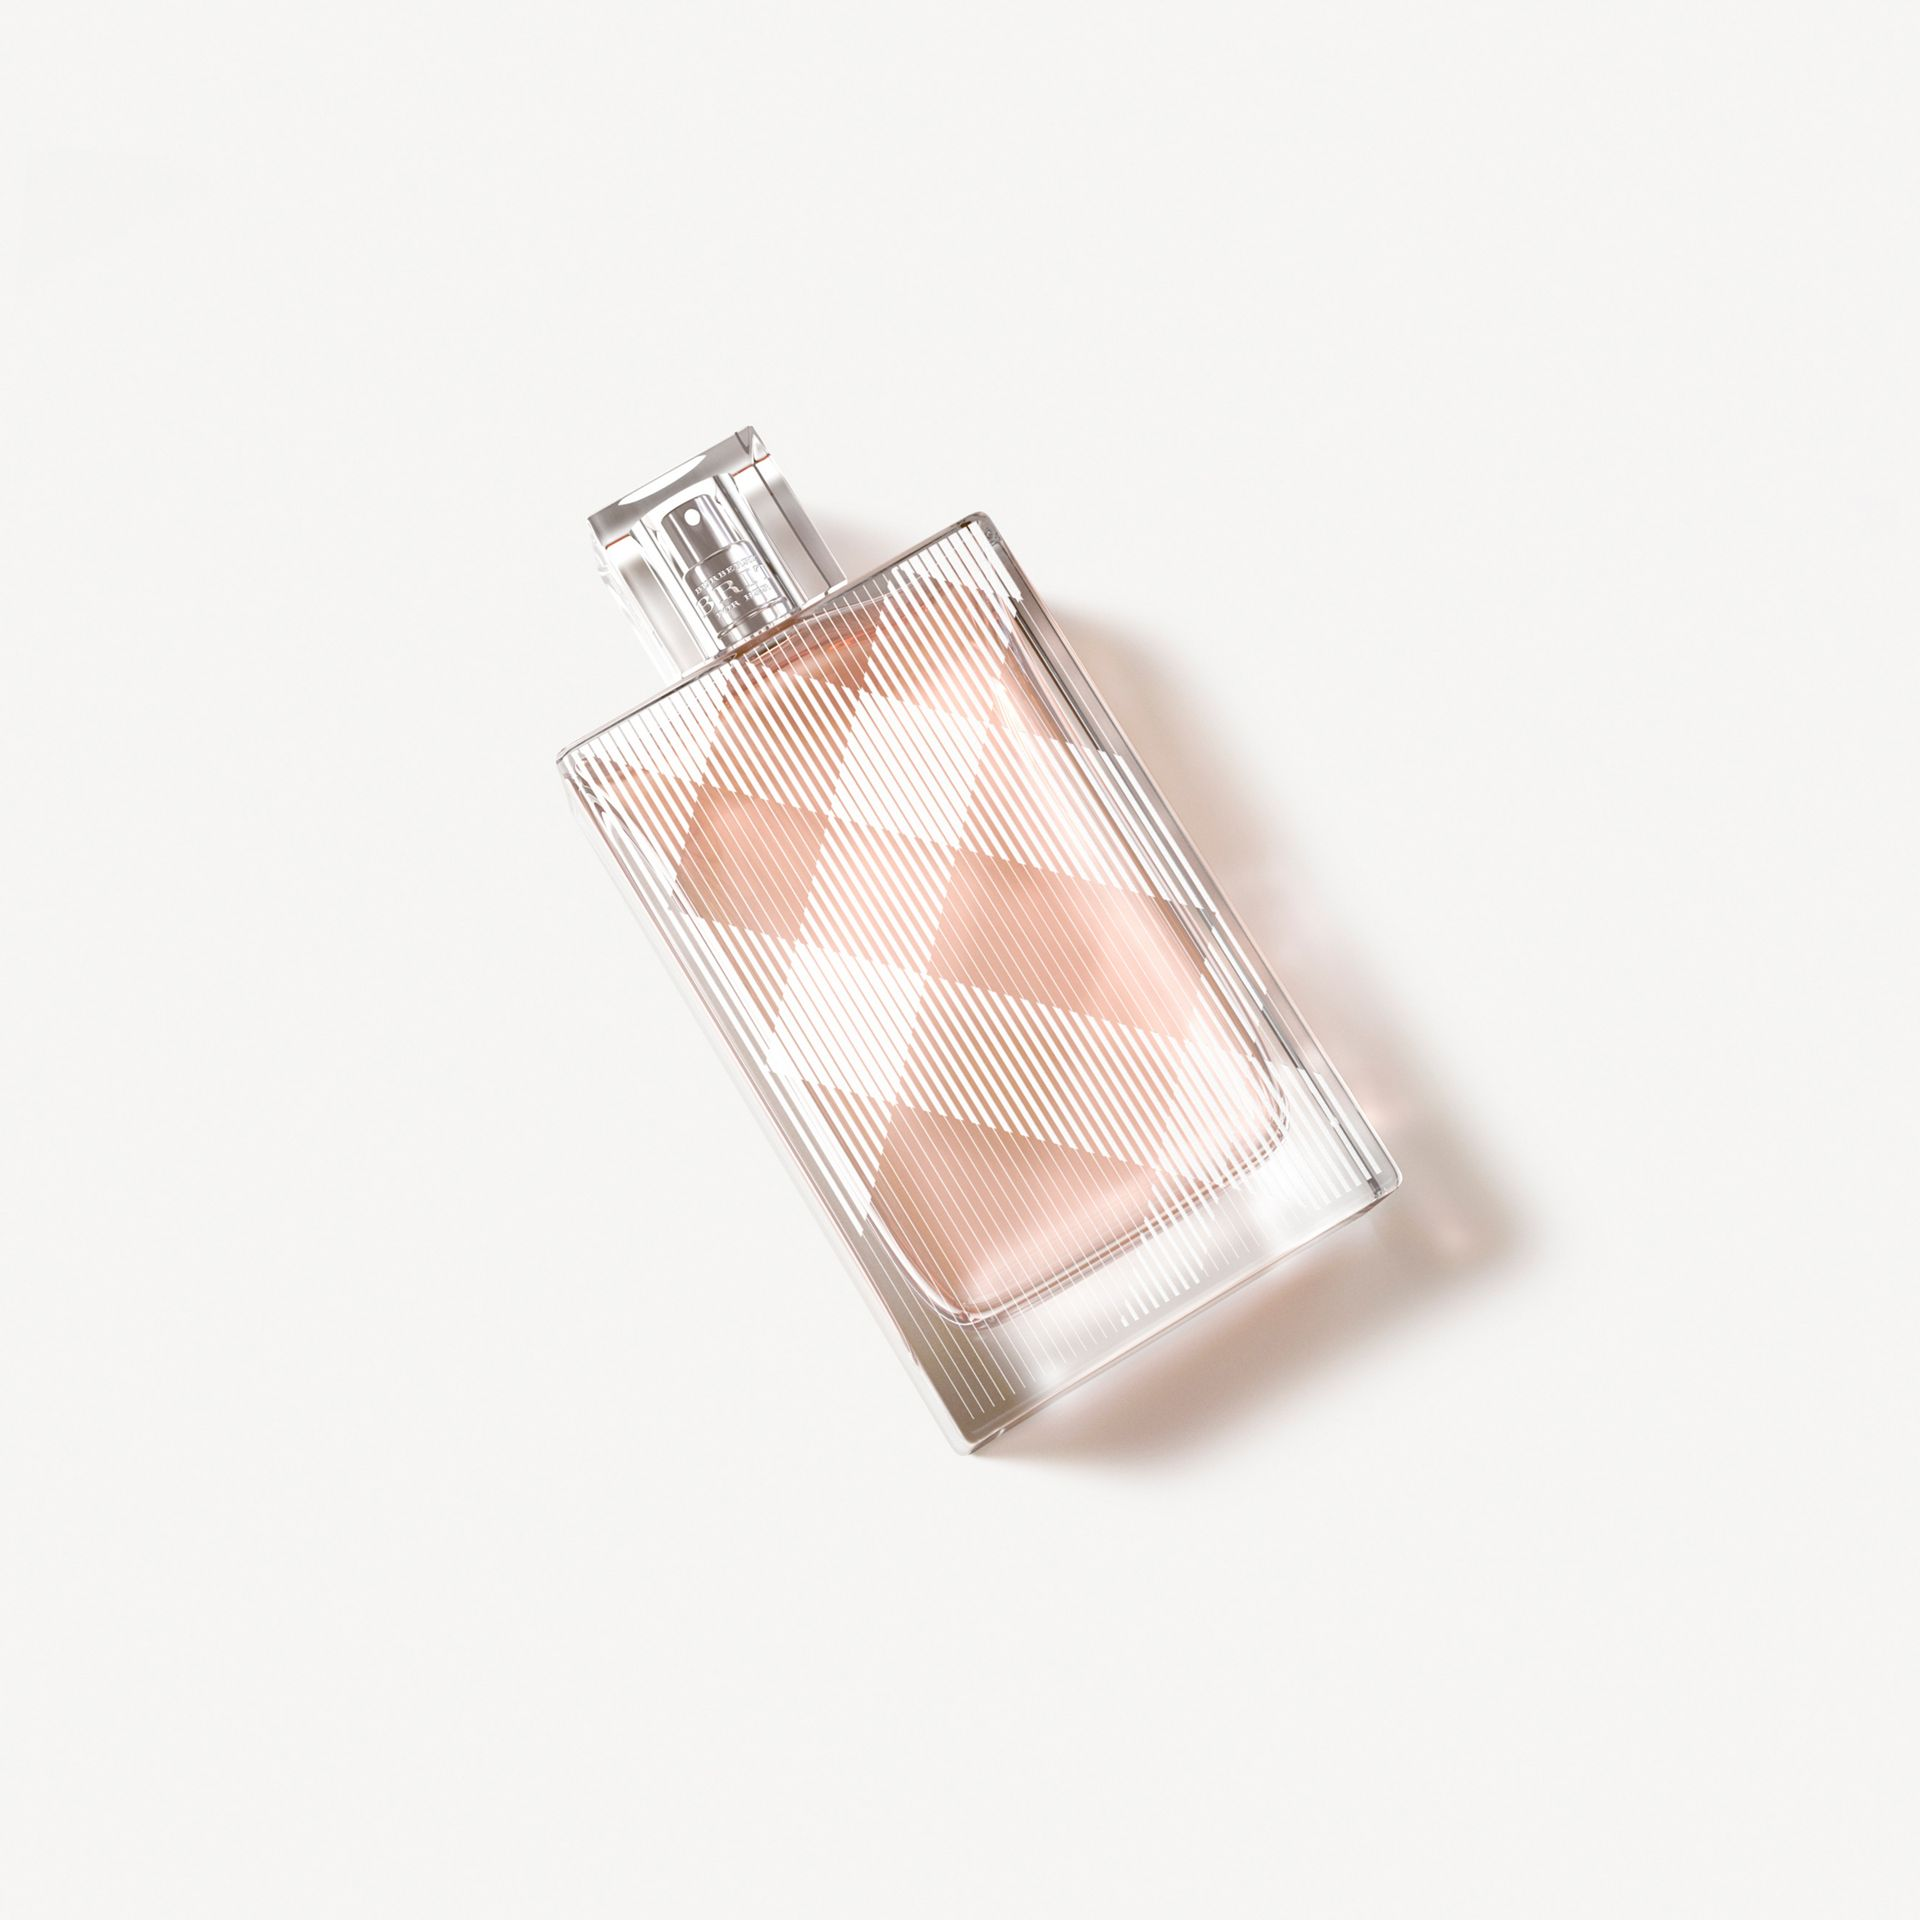 Burberry Brit For Her Eau de Toilette 100ml - gallery image 1